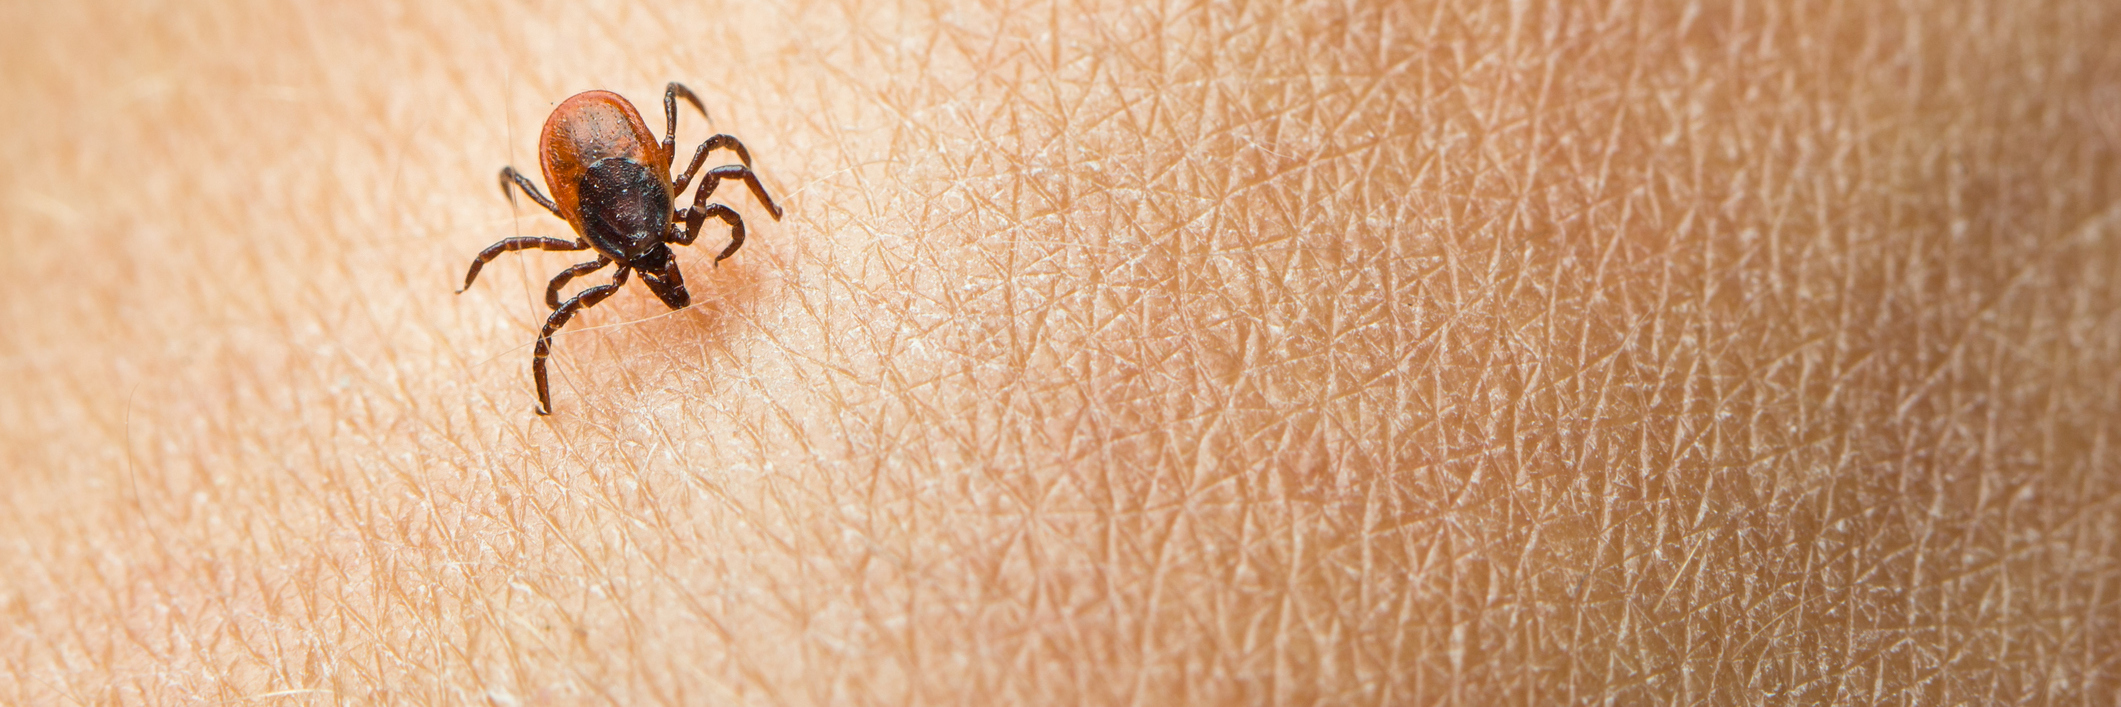 tick crawling on a person's skin